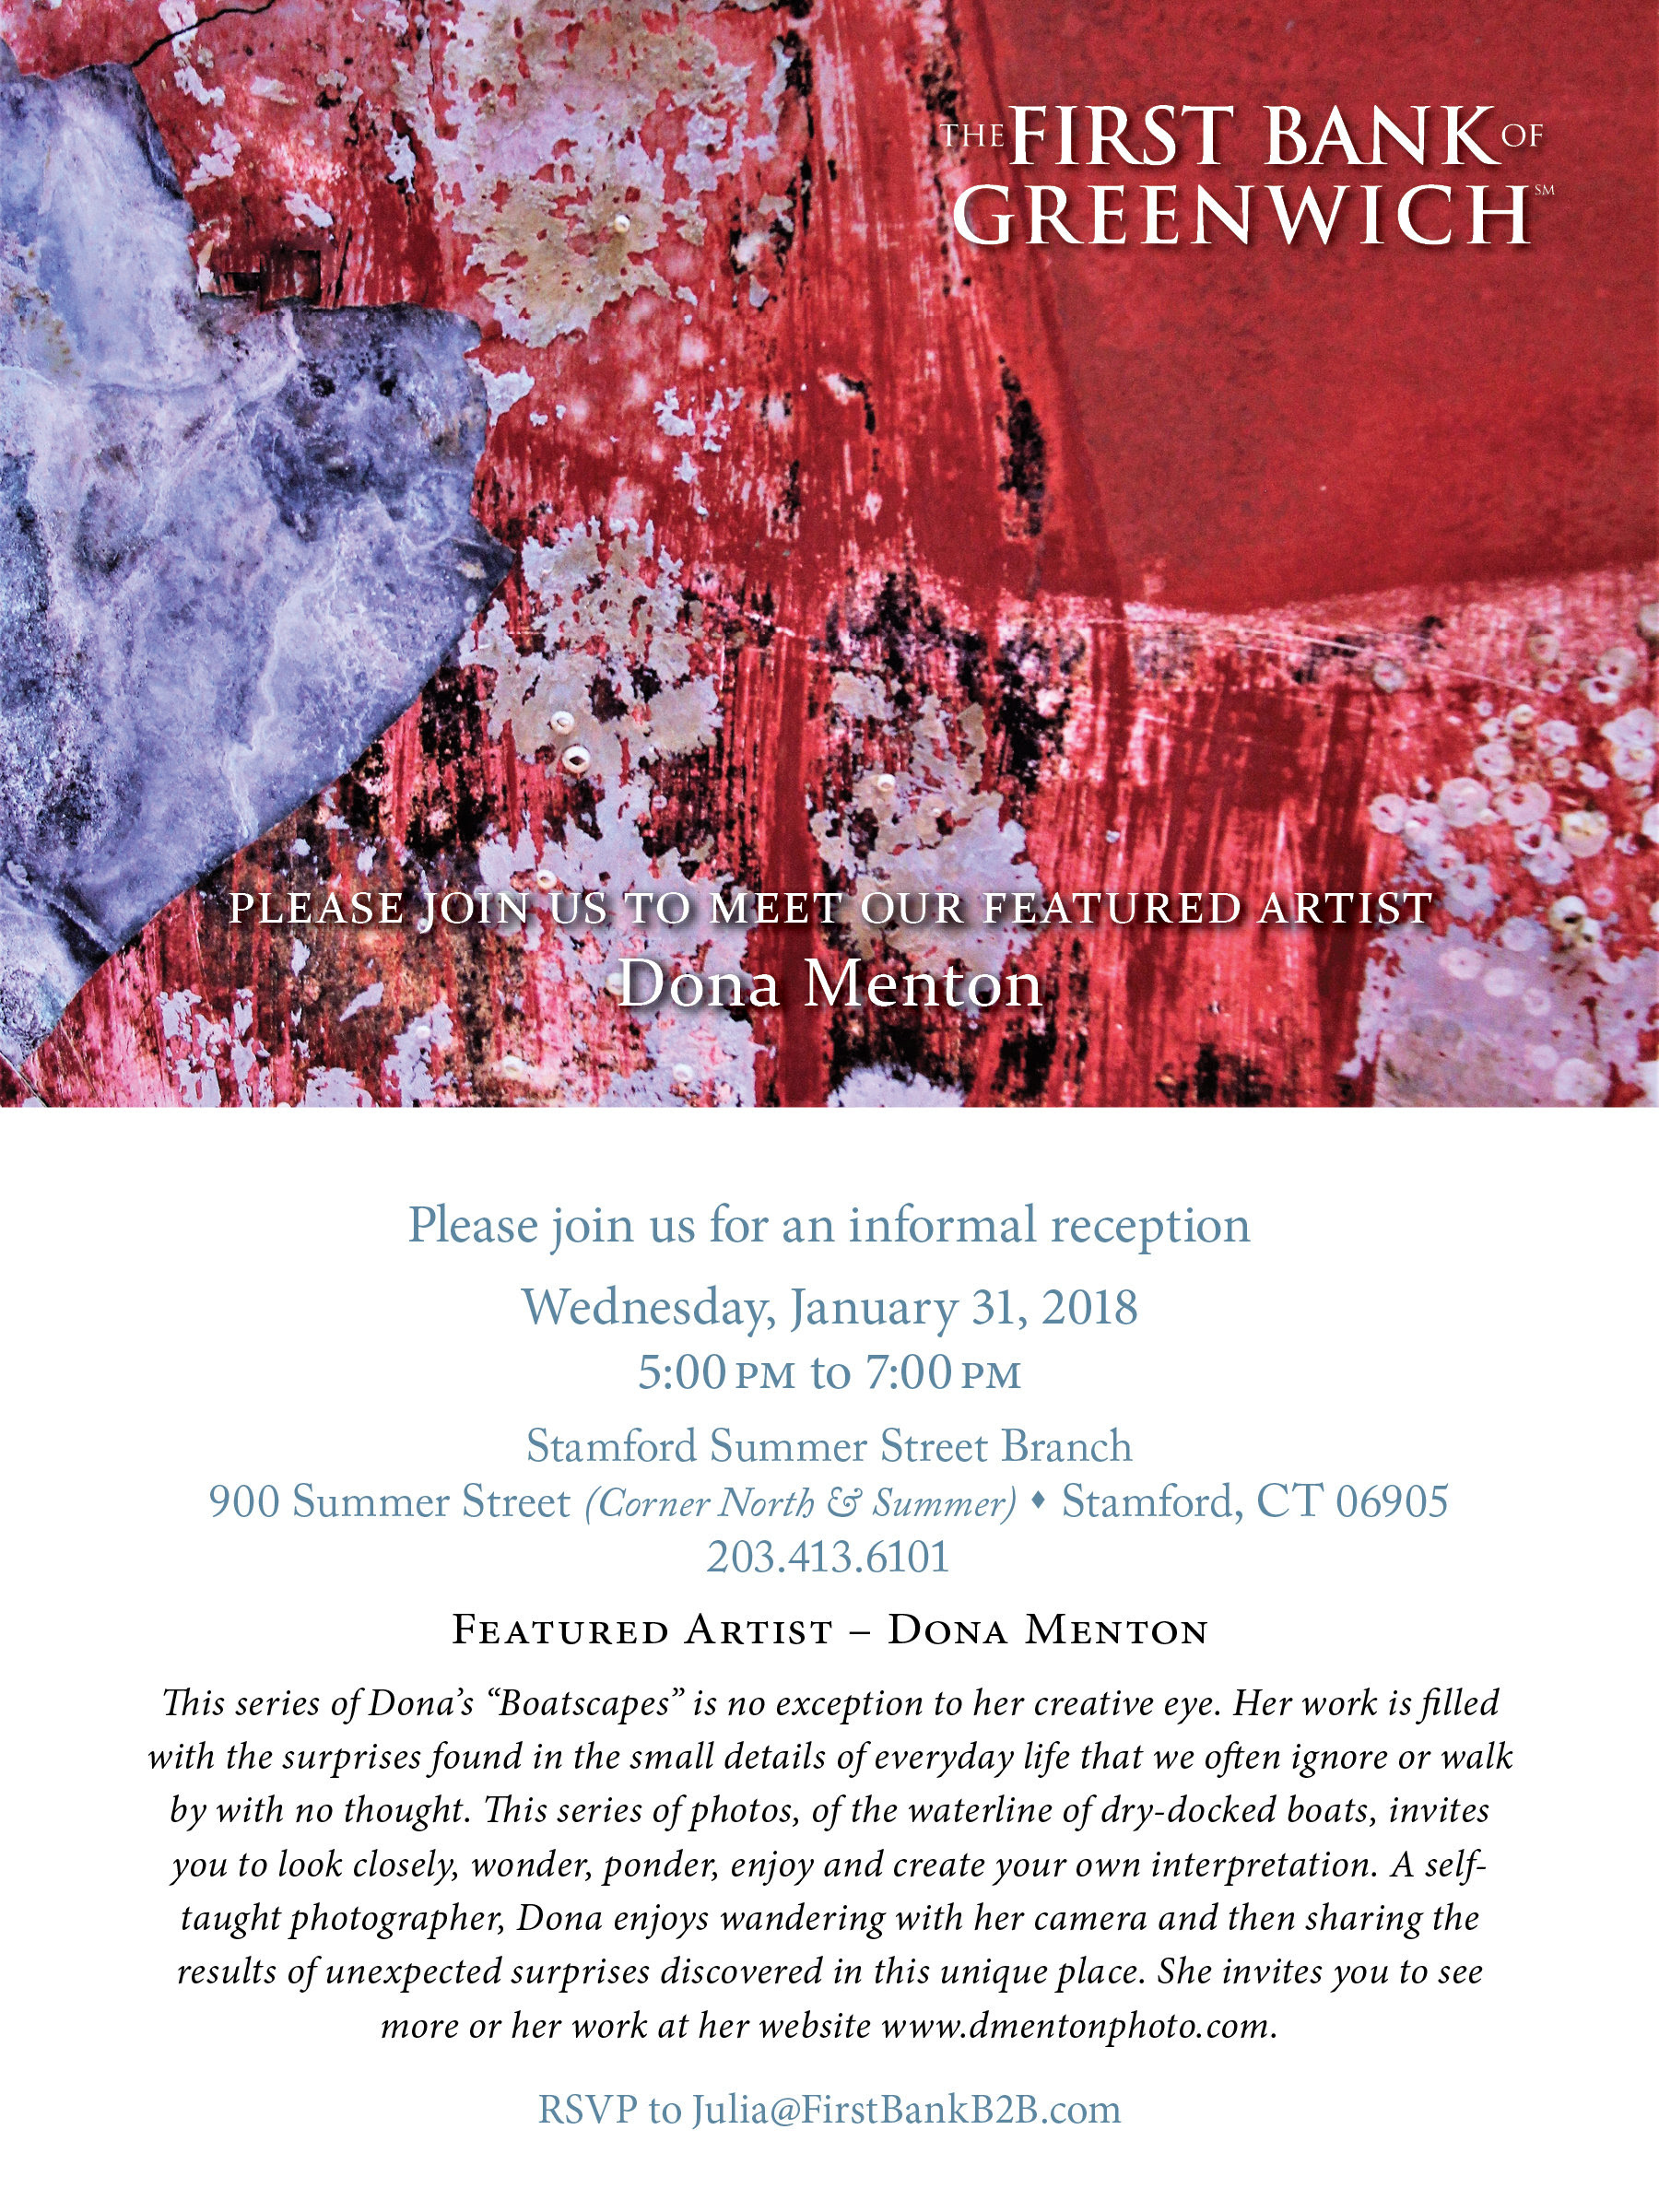 Artist Reception - Dona Menton at First Bank of Greenwich Stamford Branch